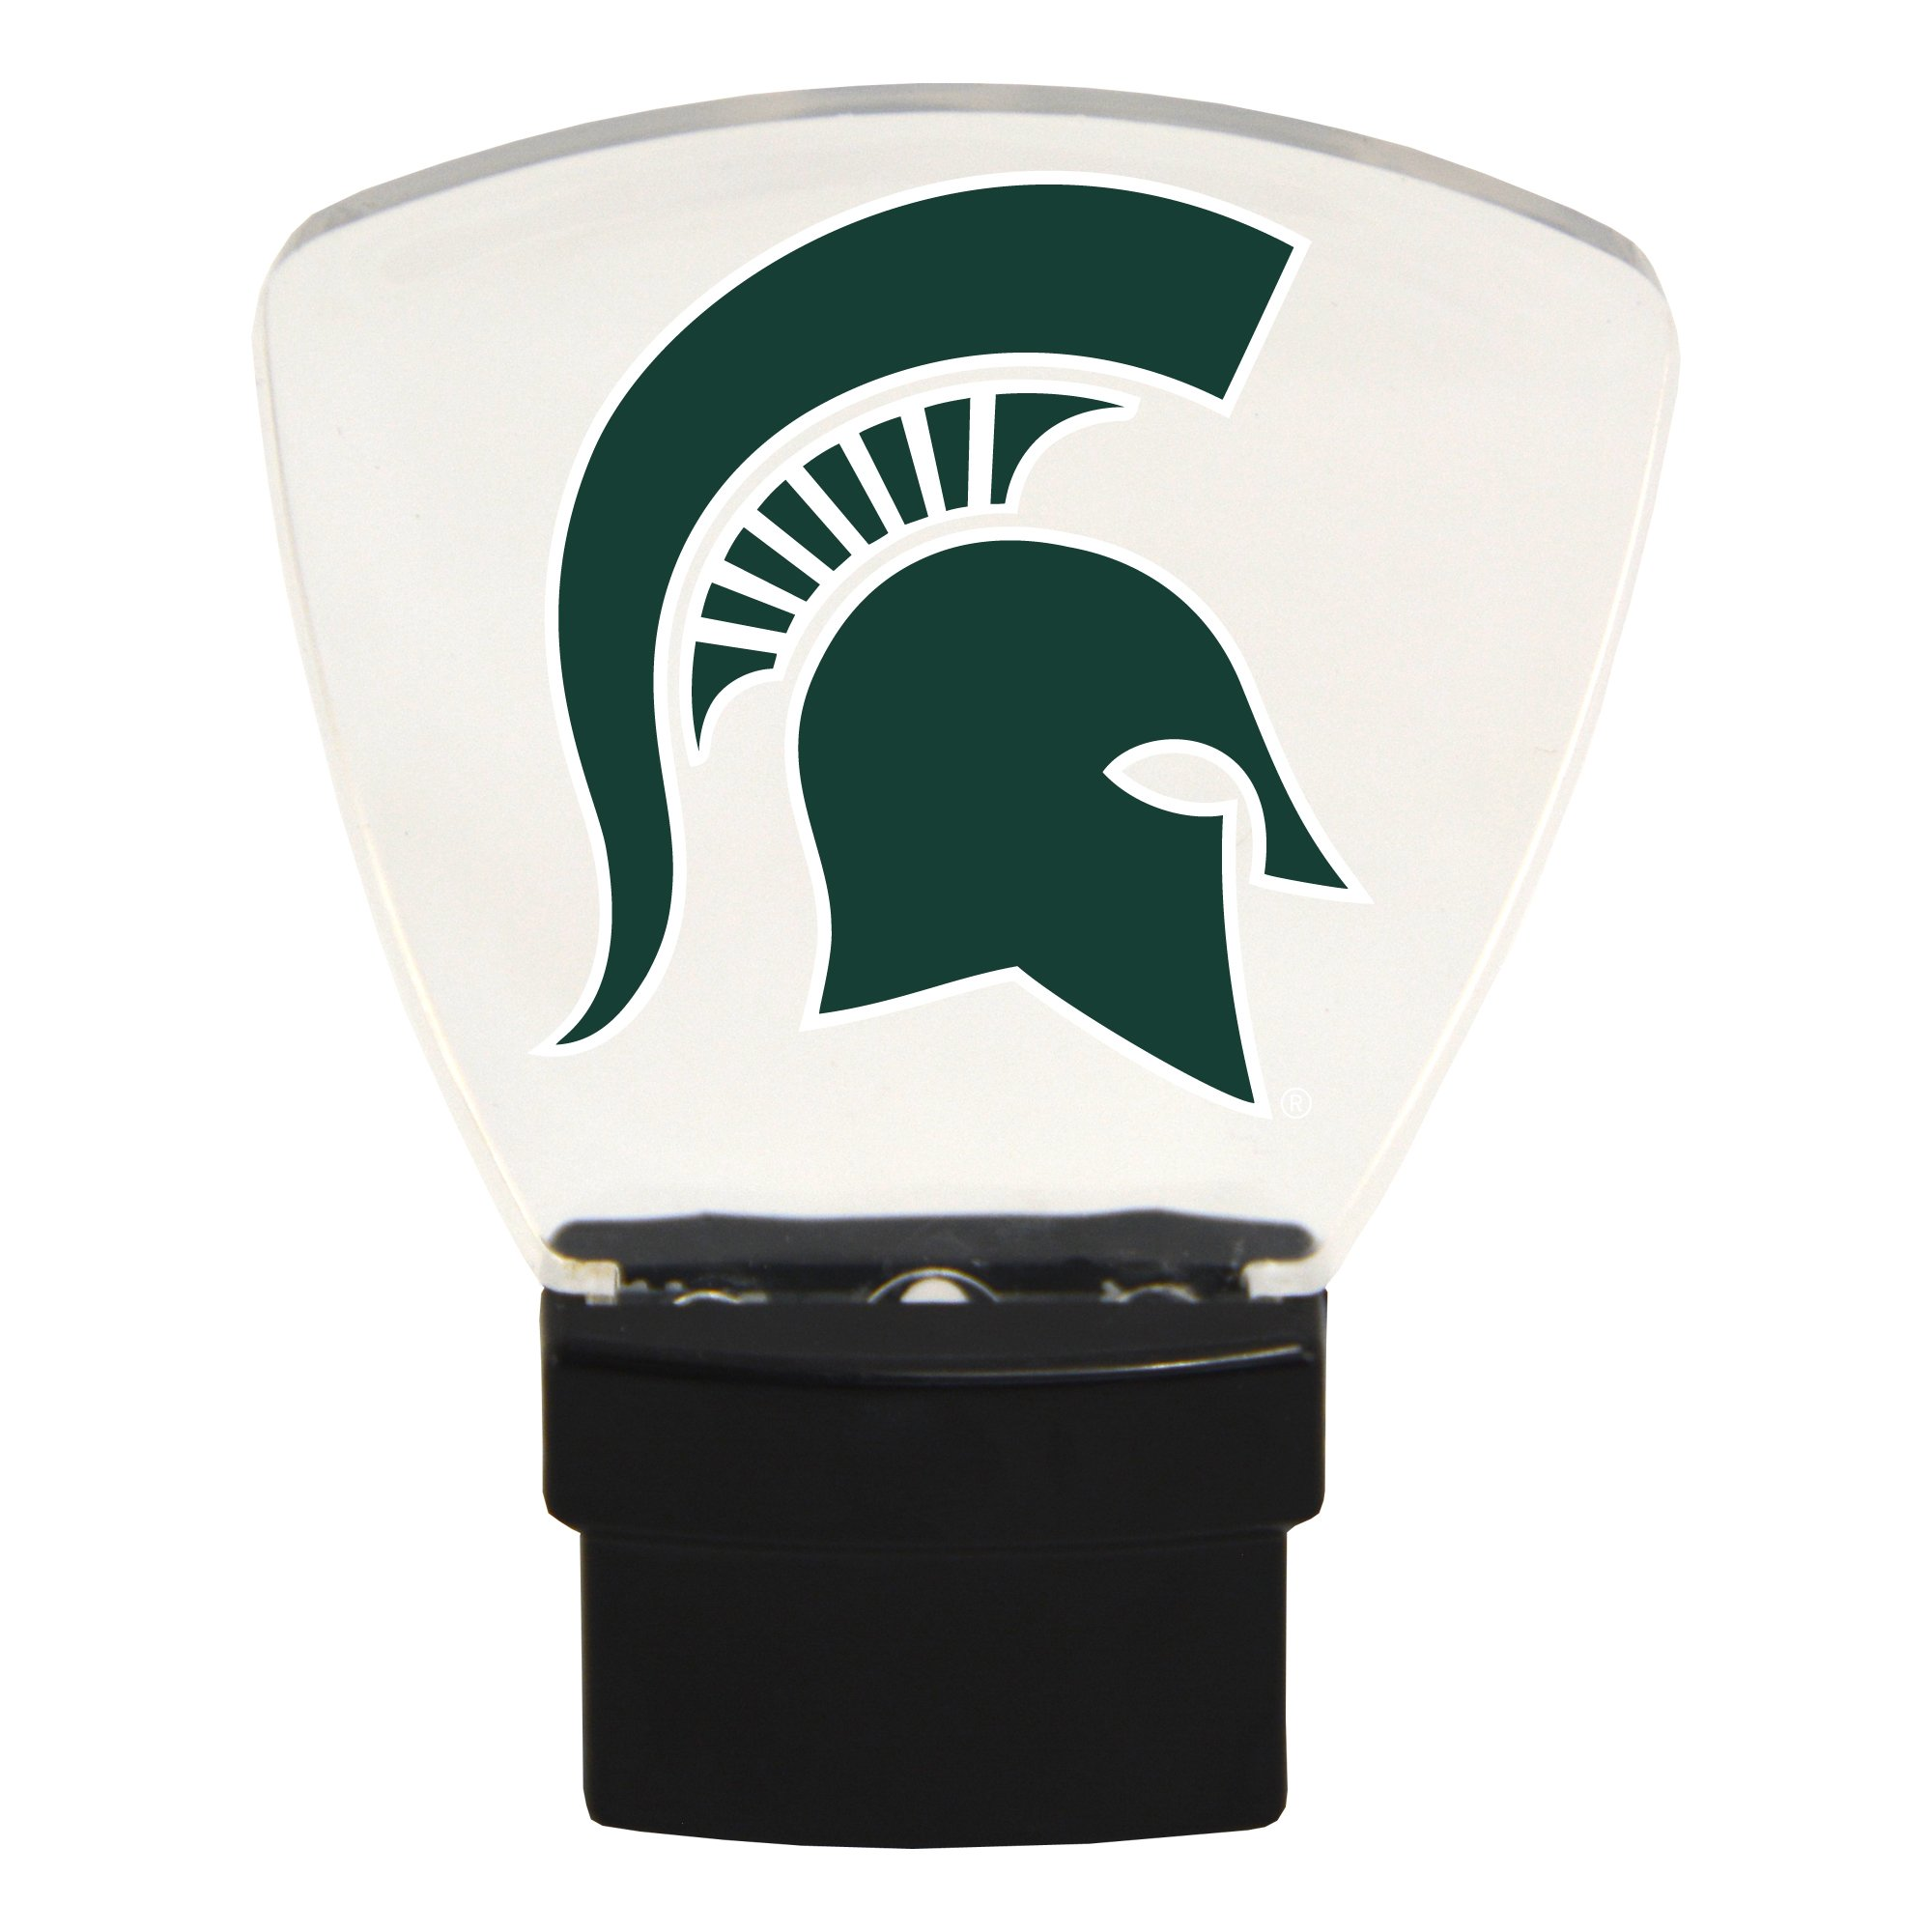 Authentic Street Signs NCAA Officially Licensed-LED NIGHT LIGHT-Super Energy Efficient-Prime Power Saving 0.5 watt, Plug In-Great Sports Fan gift for Adults-Babies-Kids Room (Michigan State Spartans)